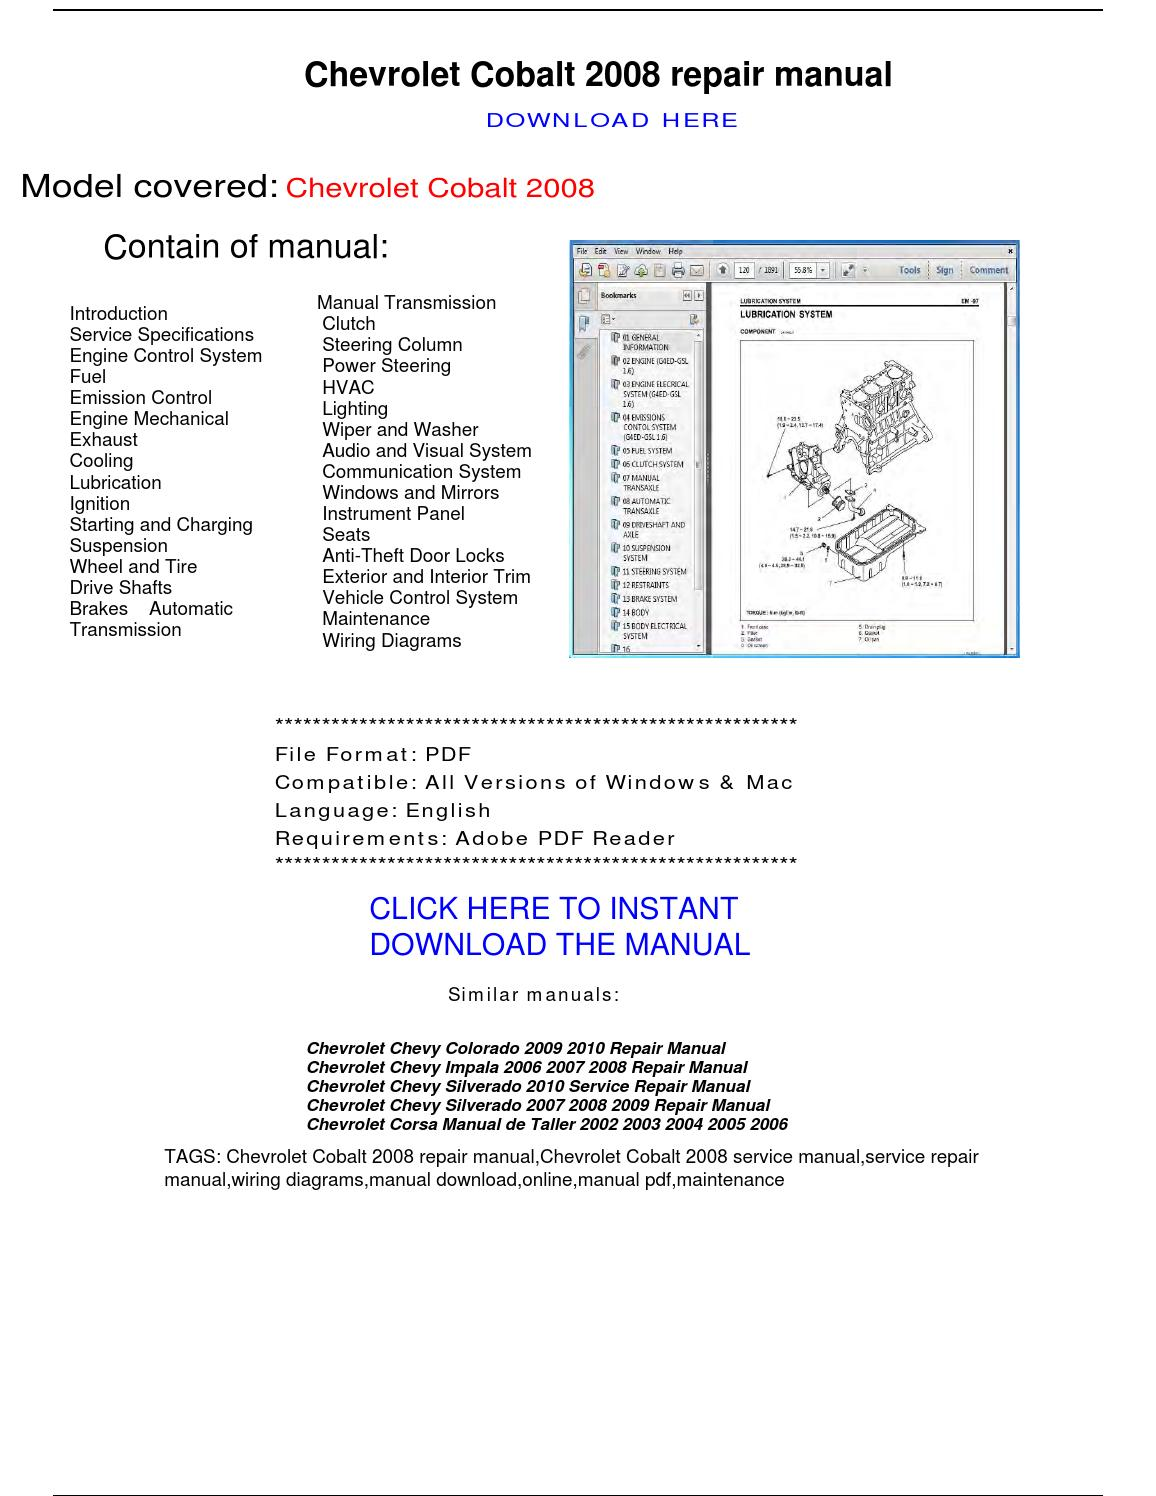 chevrolet cobalt 2008 repair manual by repairmanualpdf issuu. Black Bedroom Furniture Sets. Home Design Ideas